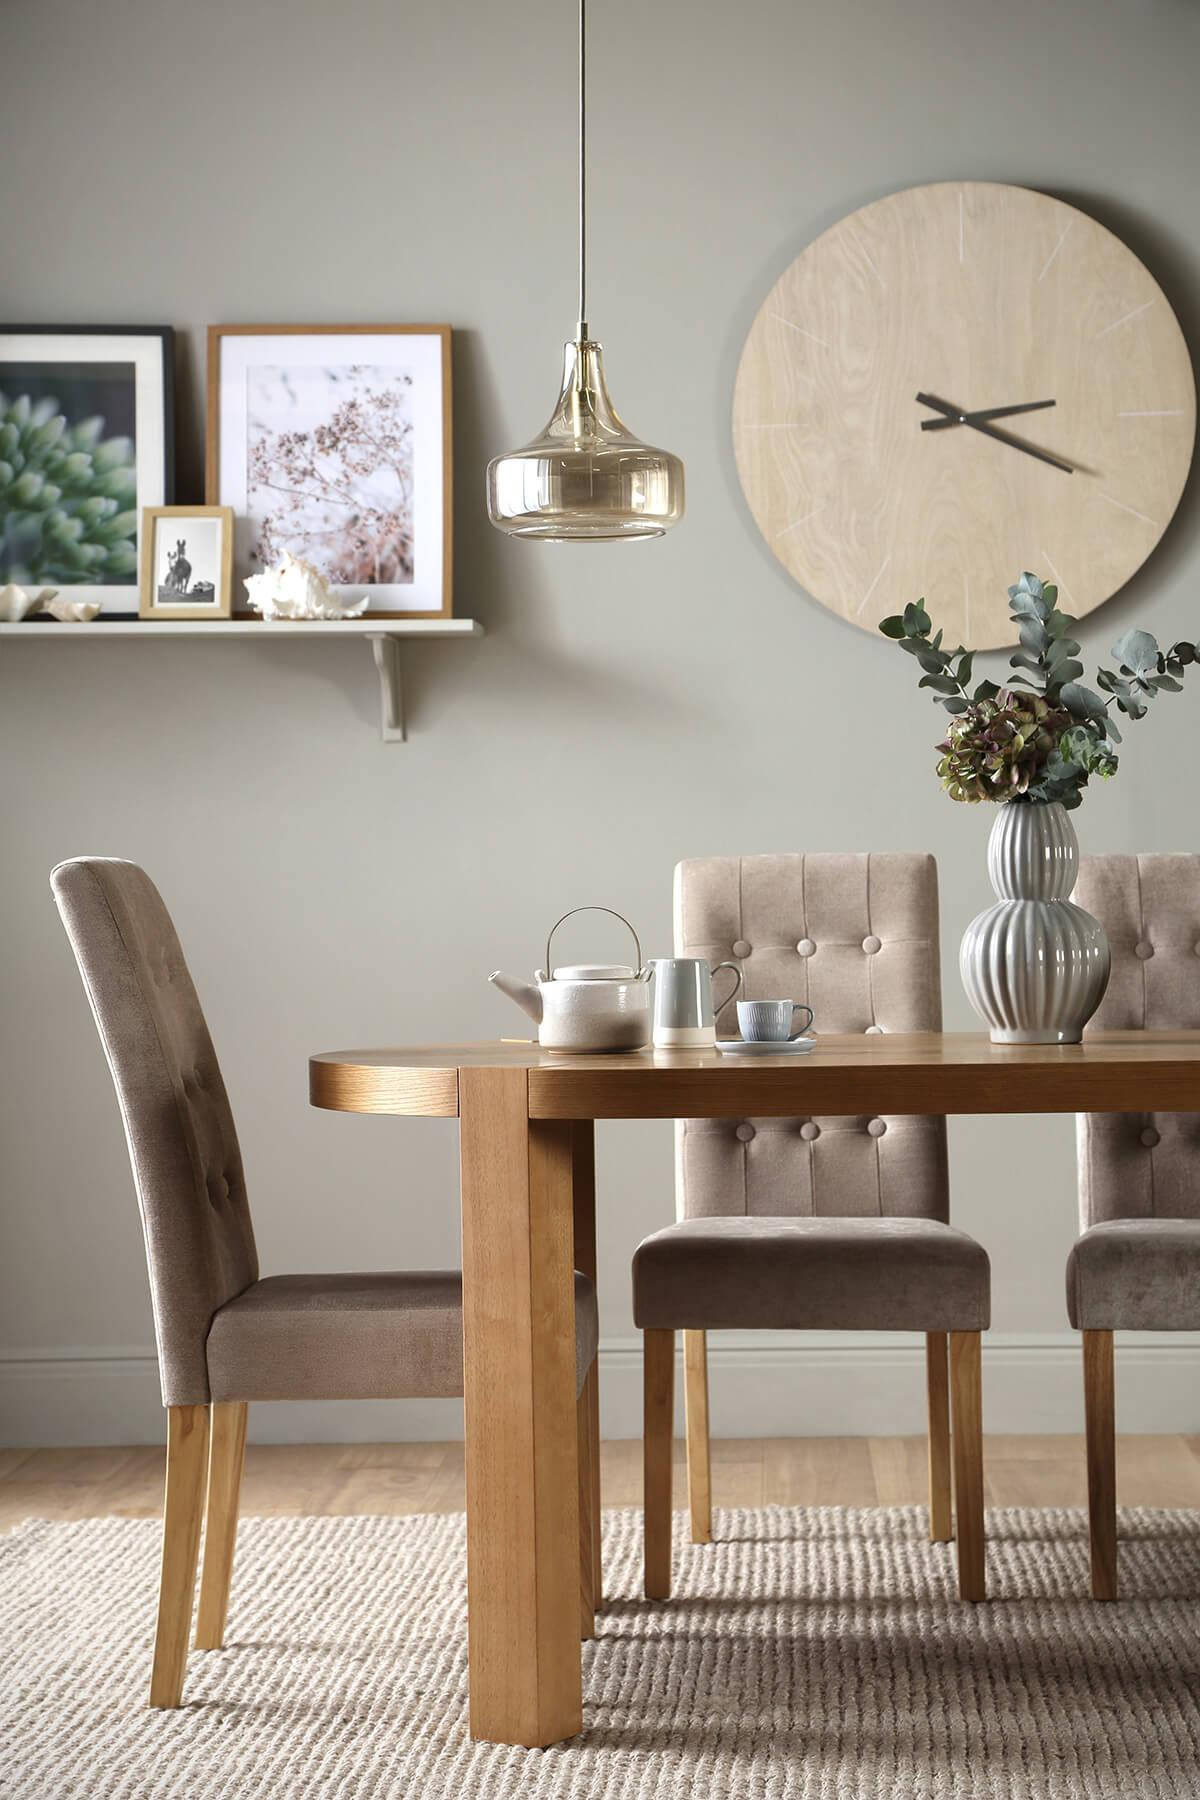 Brighton Round Oak Dining Table - with 4 Regent Mink Chairs